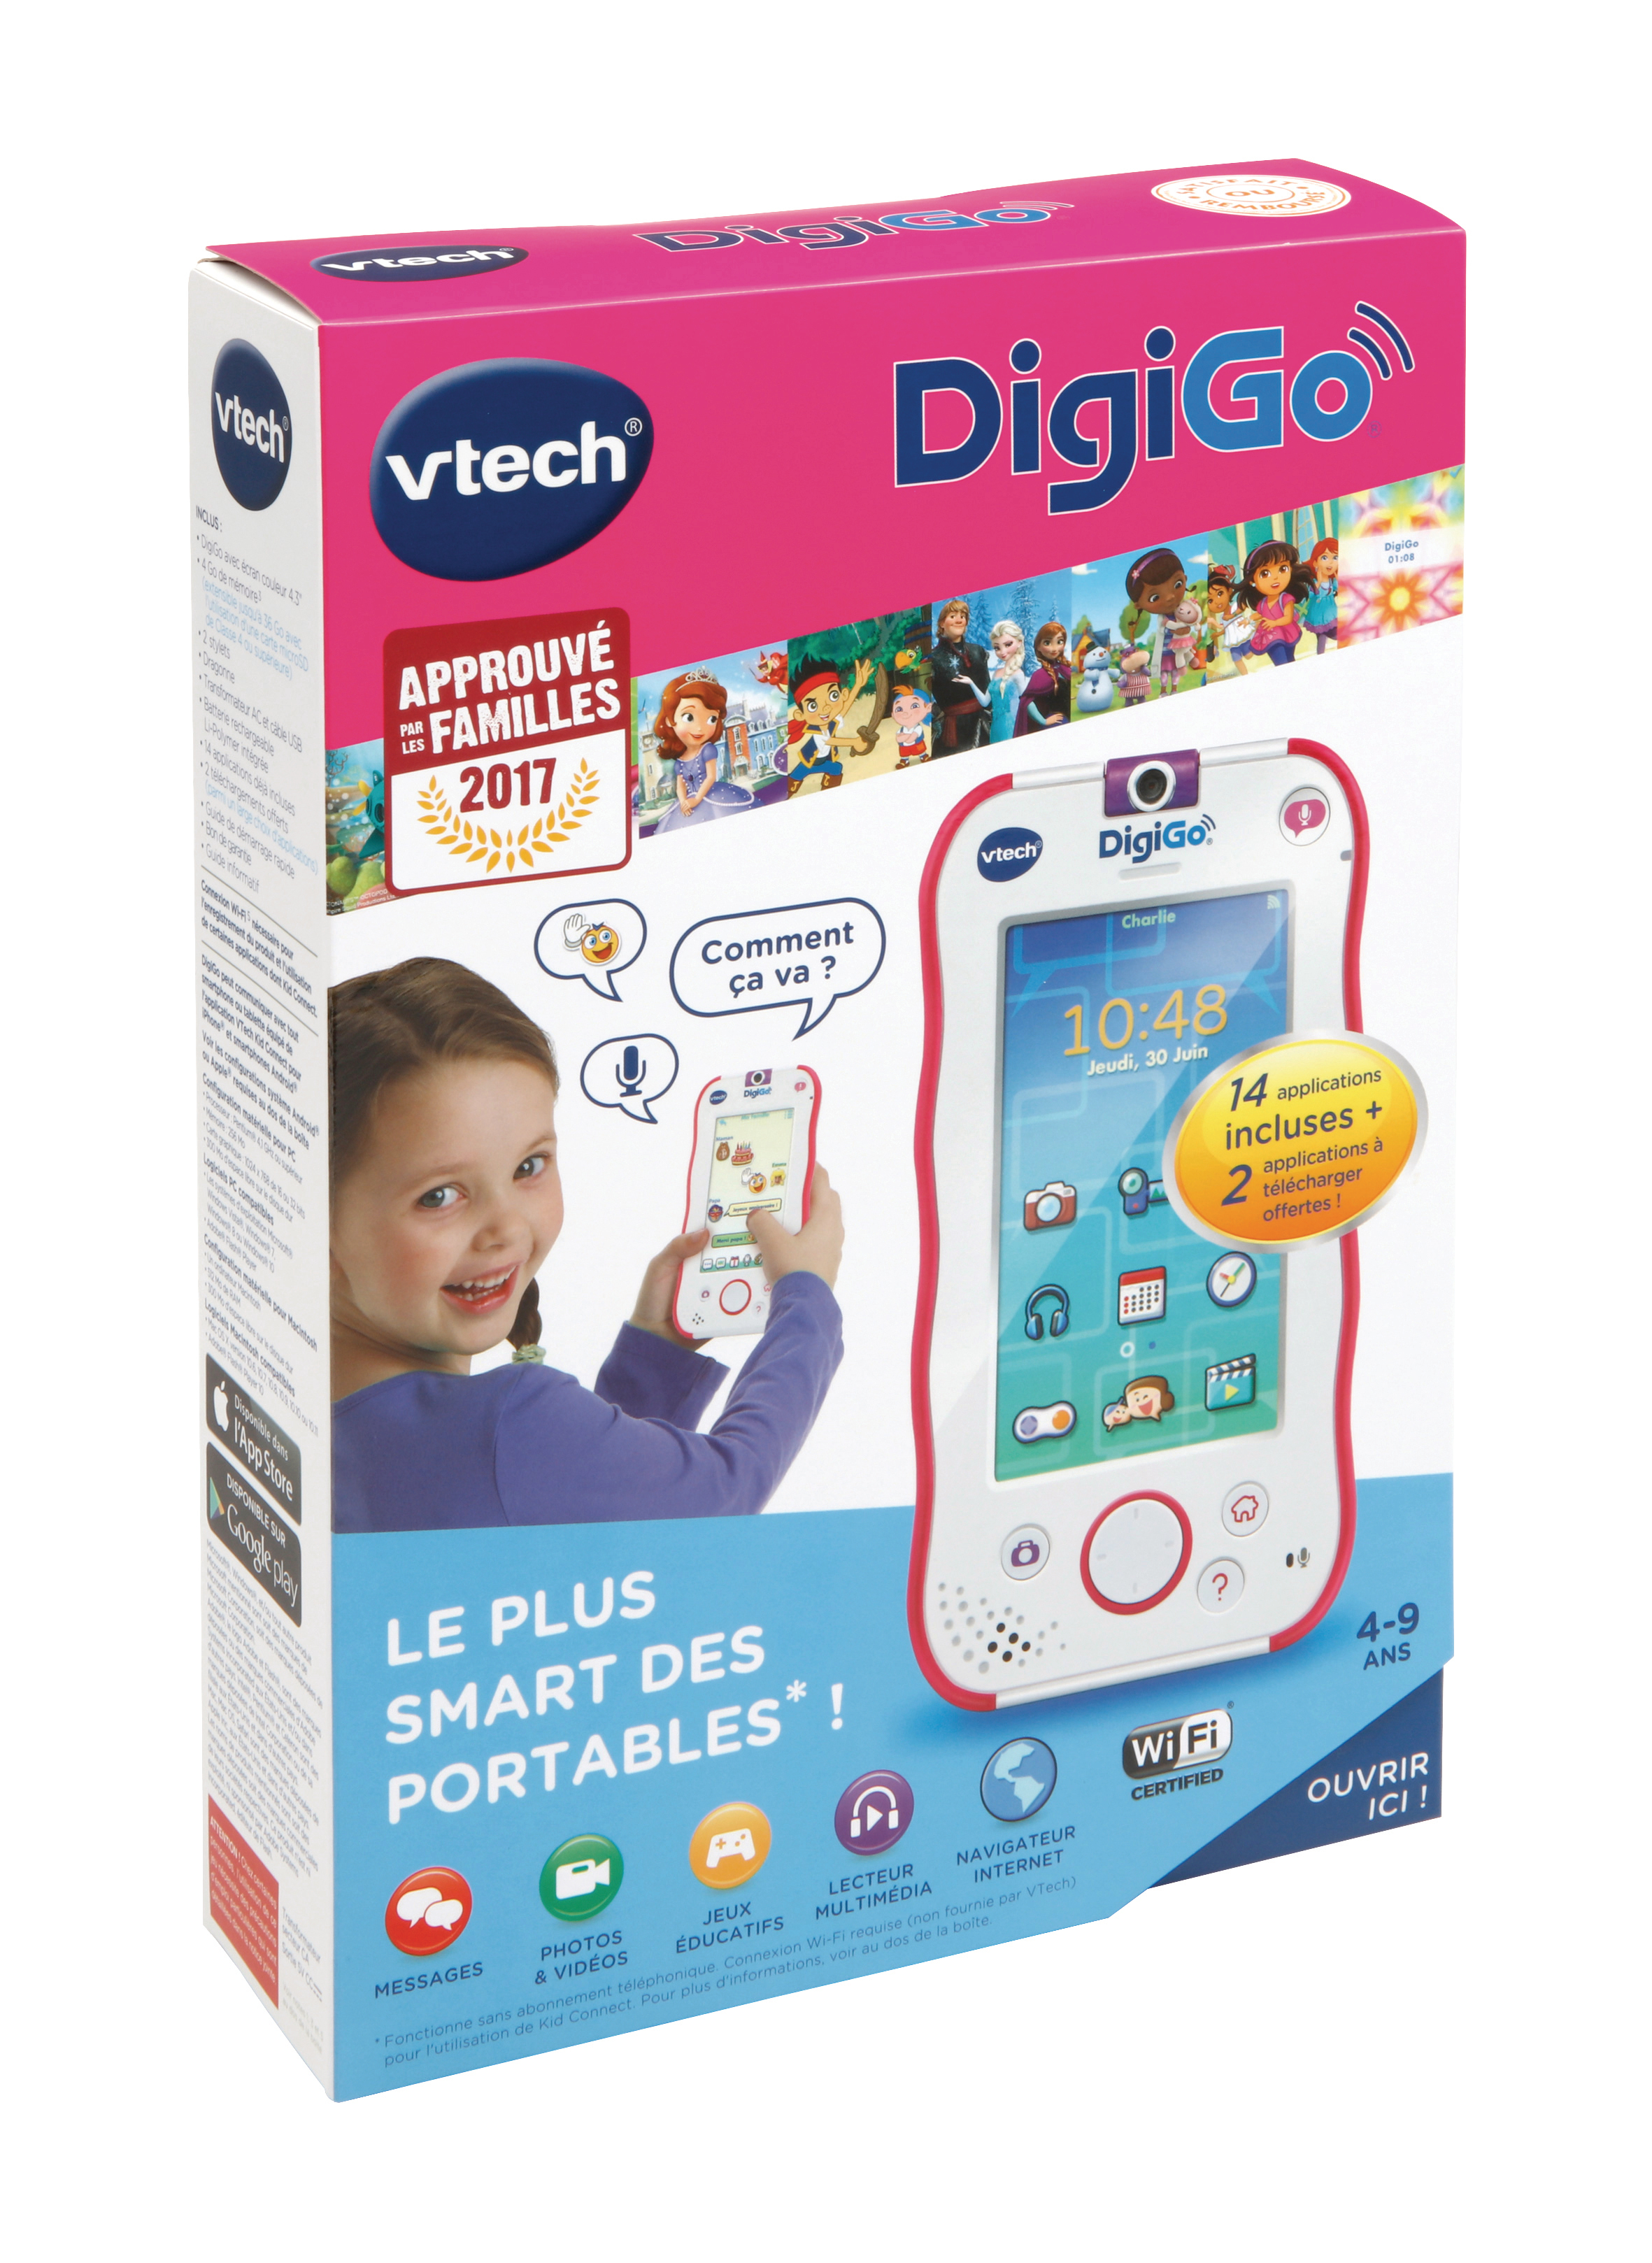 DigiGo rose - Vtech